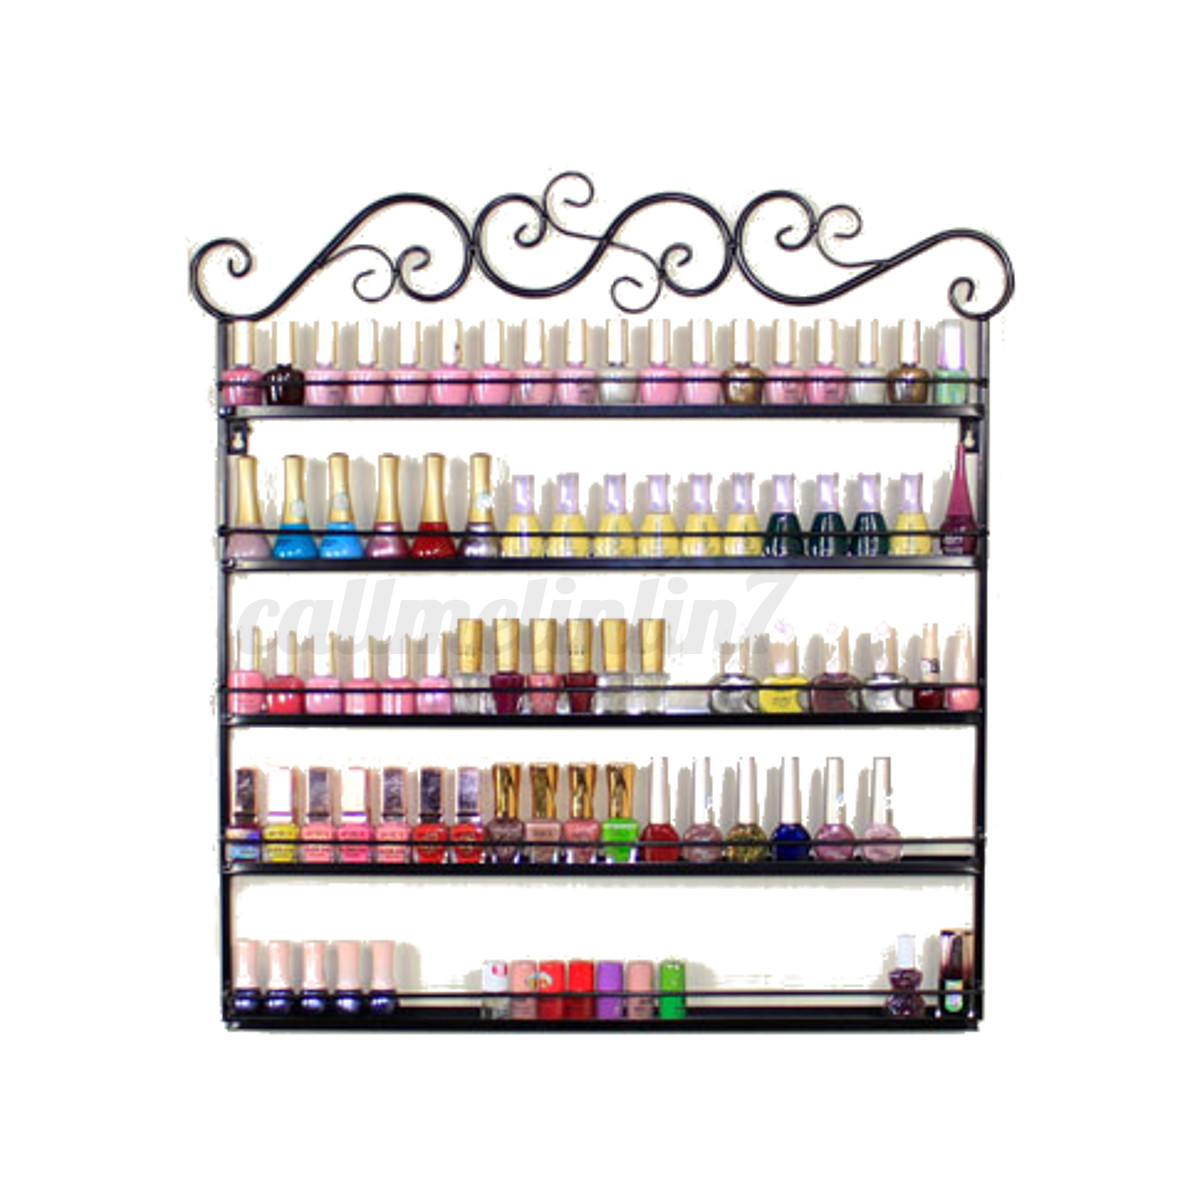 5 Tier Metal Wall Mounted Nail Polish Holder Display Wall Shelf Organizer Rack